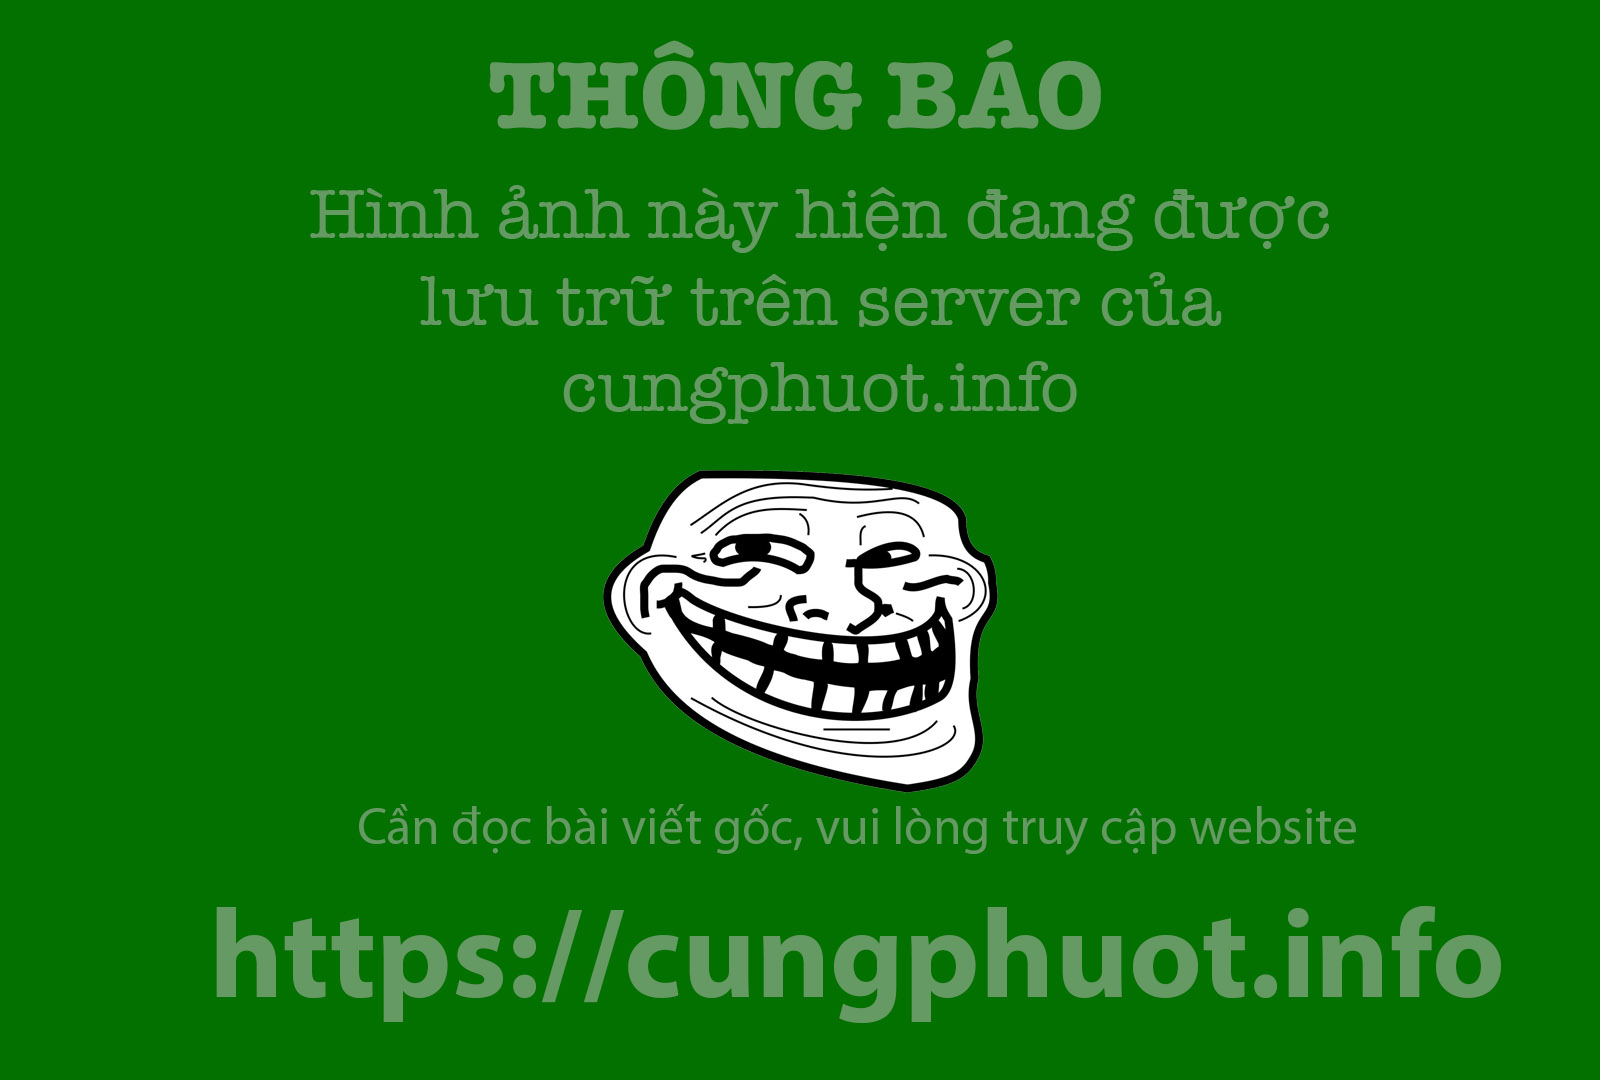 May von nui tren cong troi Muong Long hinh anh 3